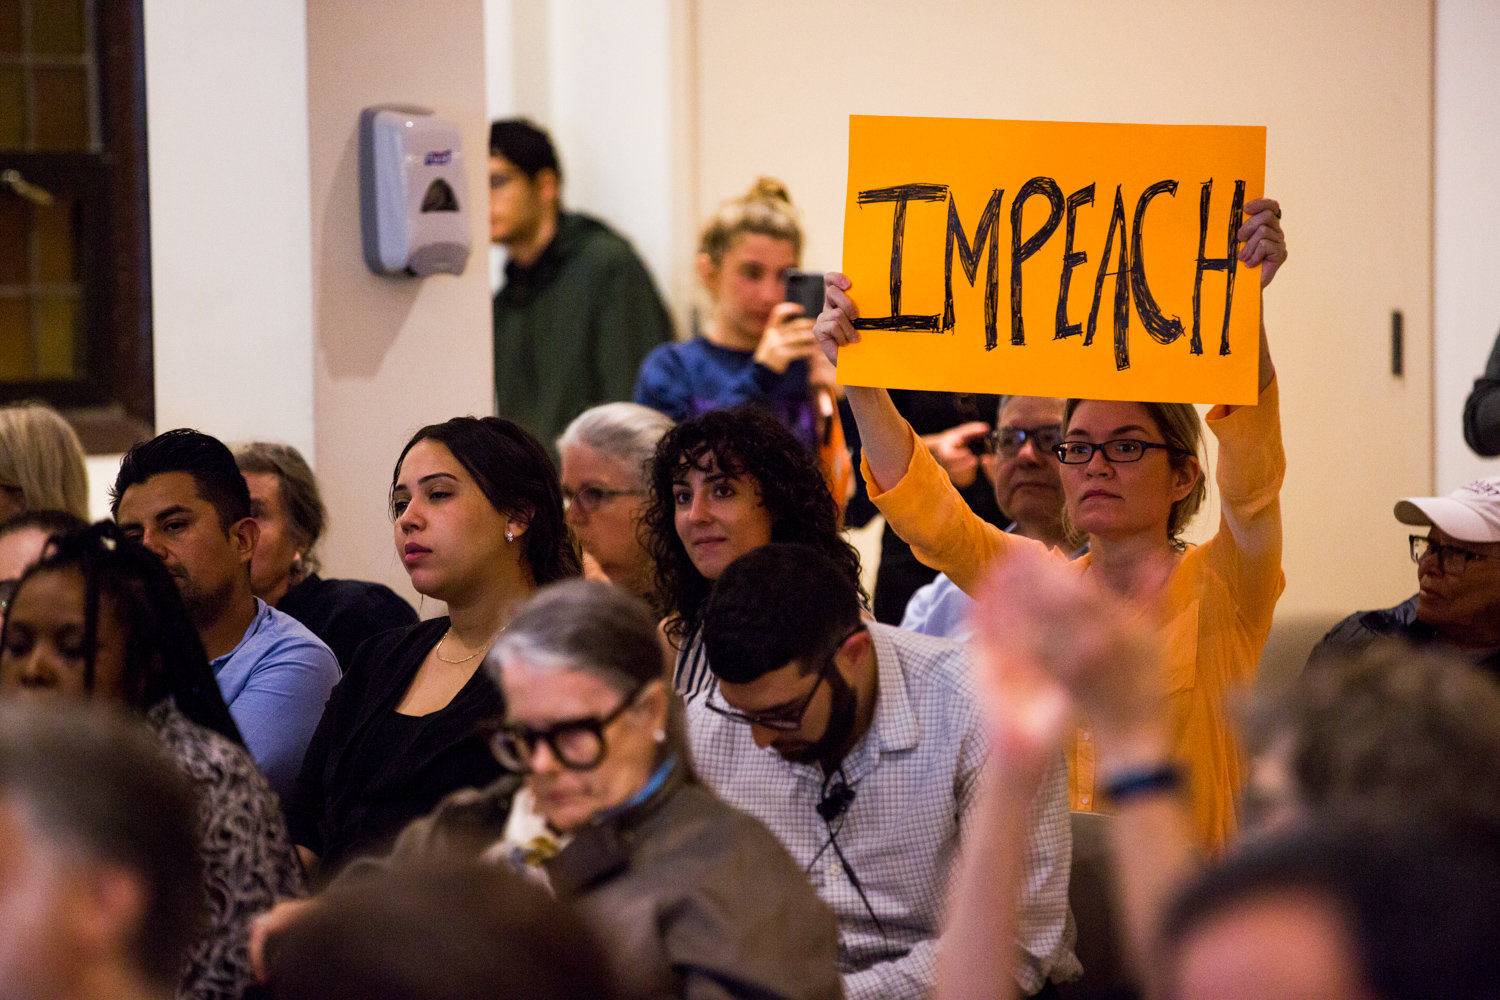 Stephanie Fitzhugh holds up a sign that reads 'impeach' at a Washington Heights forum about the impeachment process hosted by U.S. Rep. Adriano Espaillat on Oct. 7.